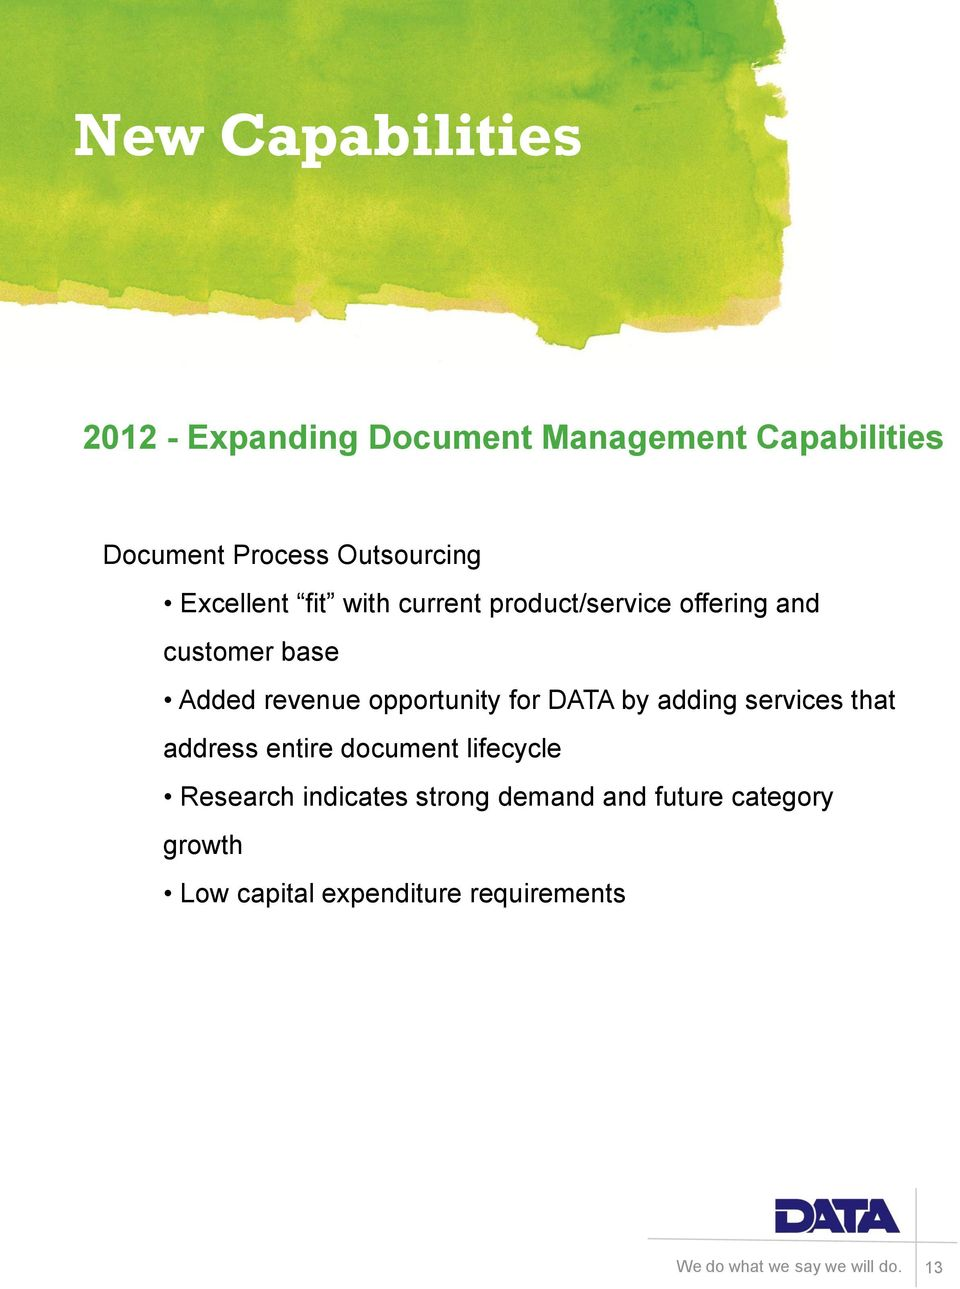 revenue opportunity for DATA by adding services that address entire document lifecycle